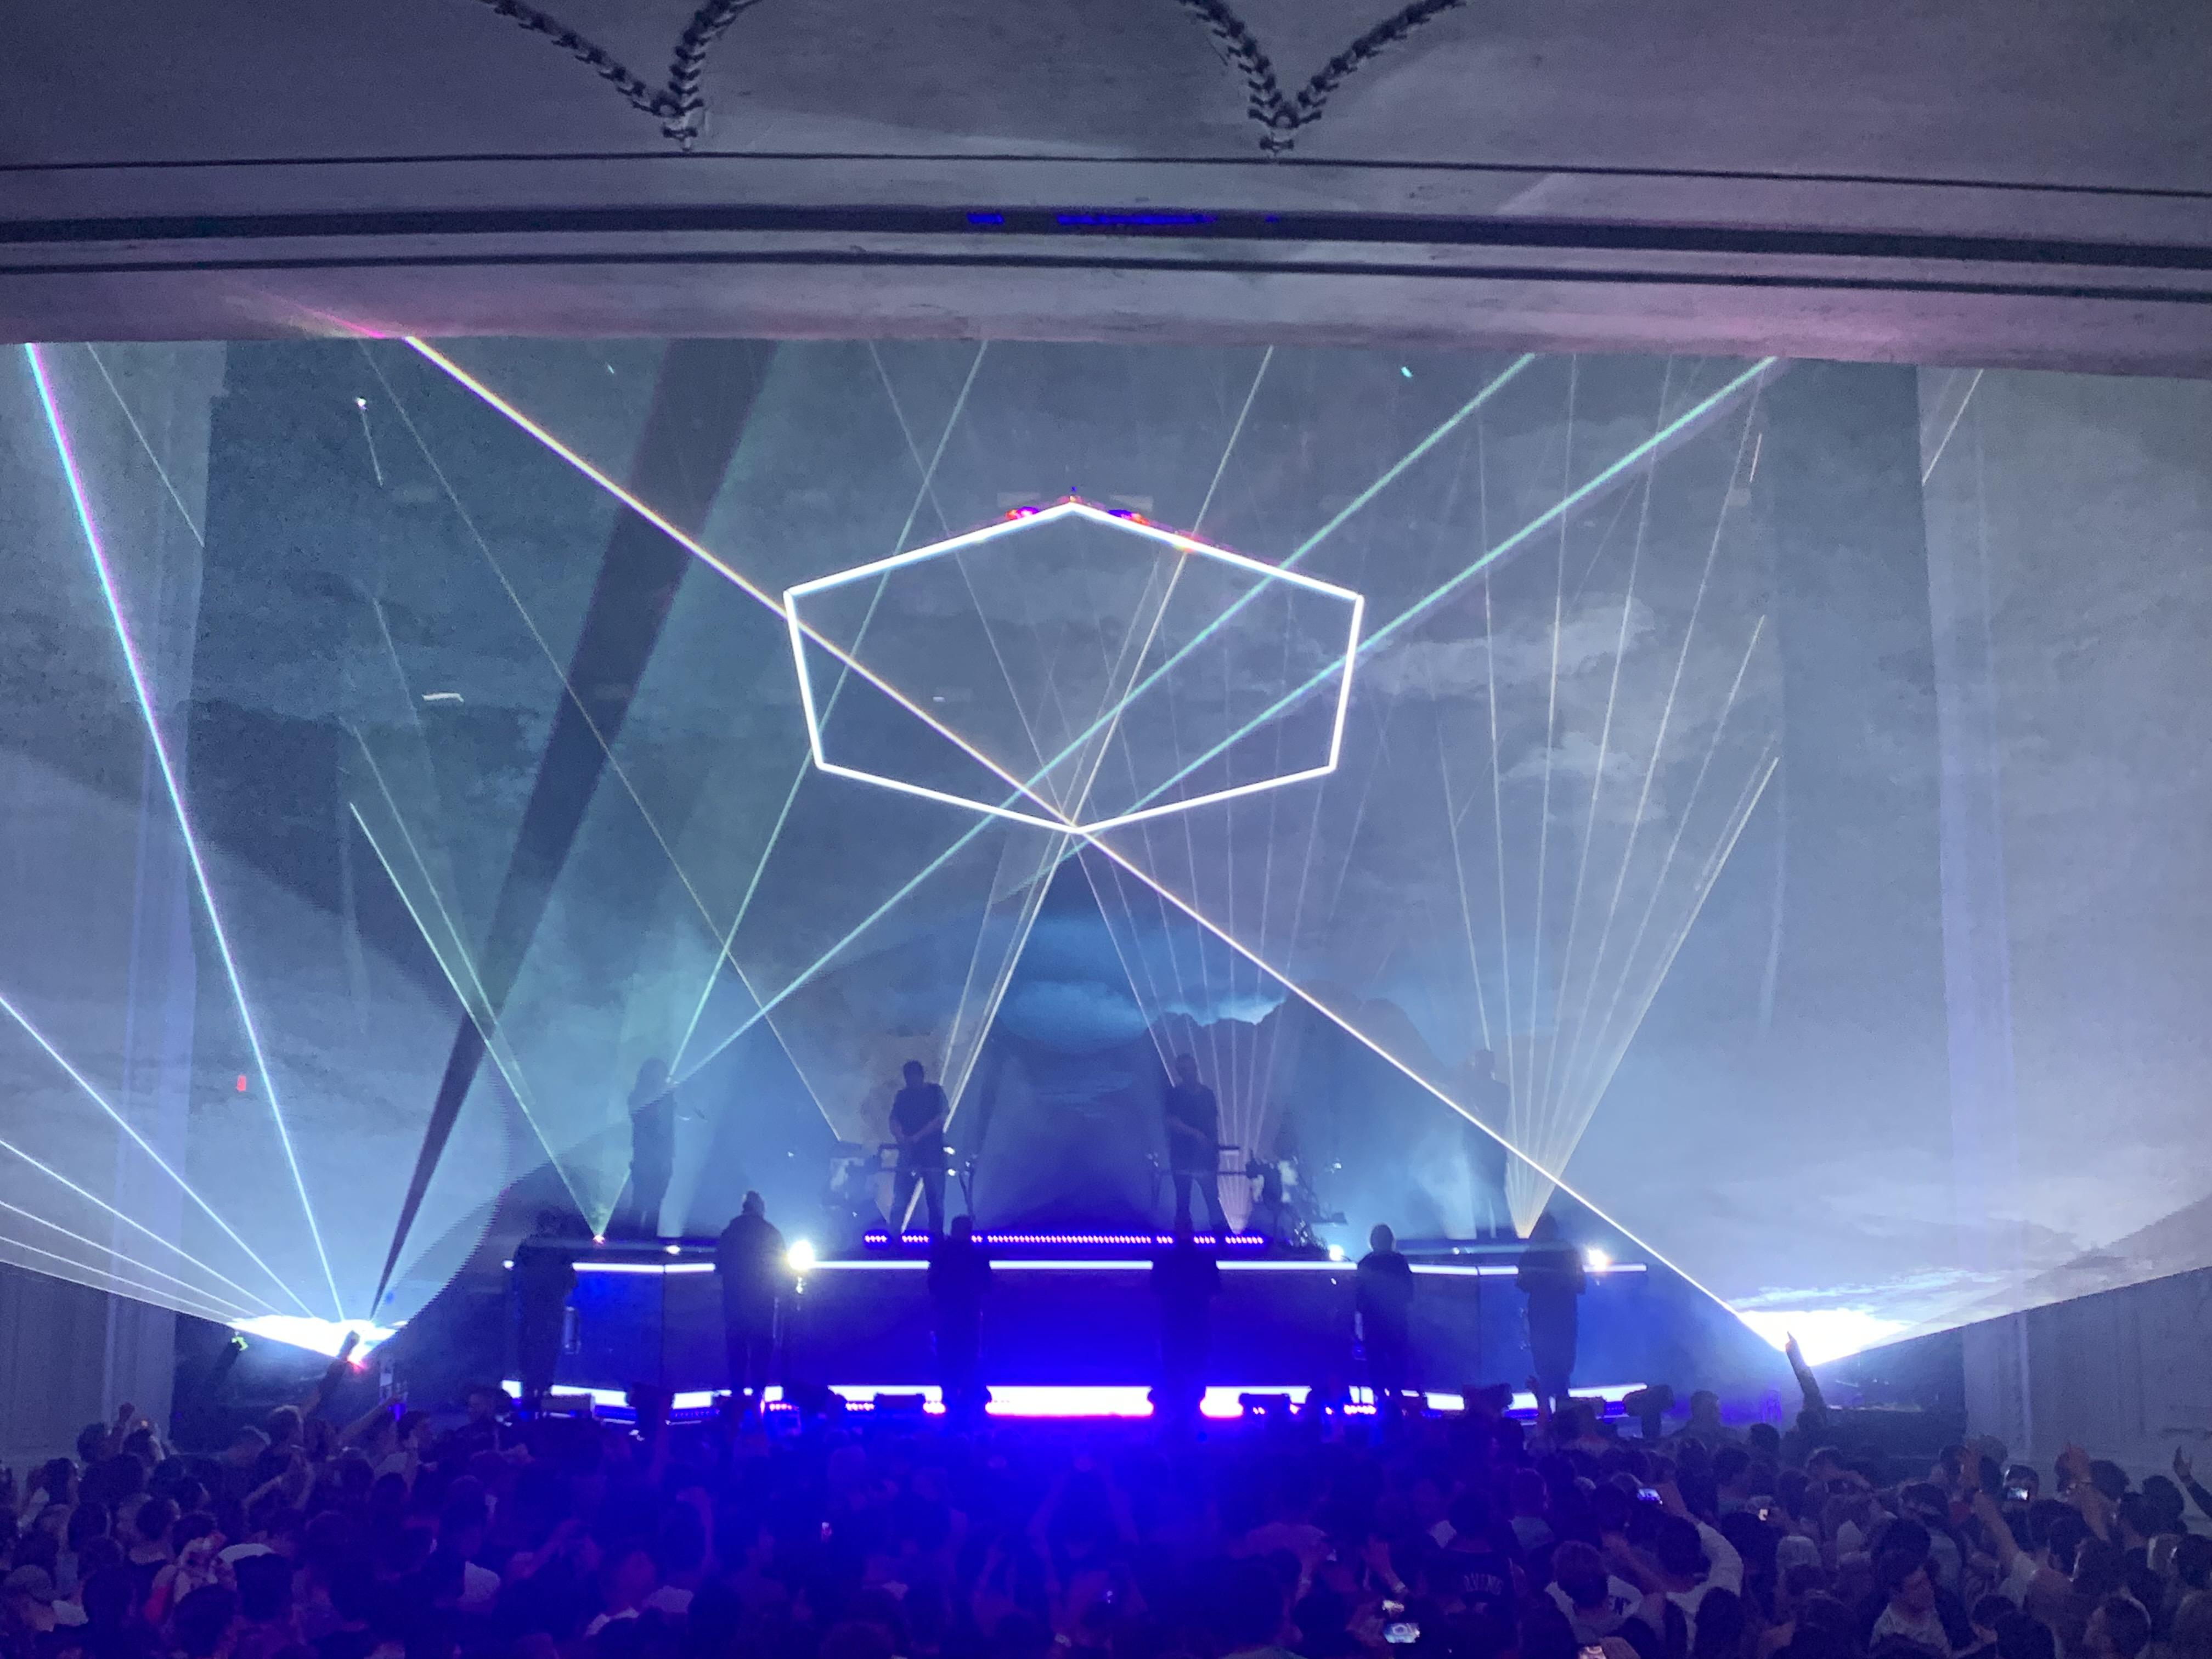 Second Odesza Show In Montclair Nj Was Amazing Loved The